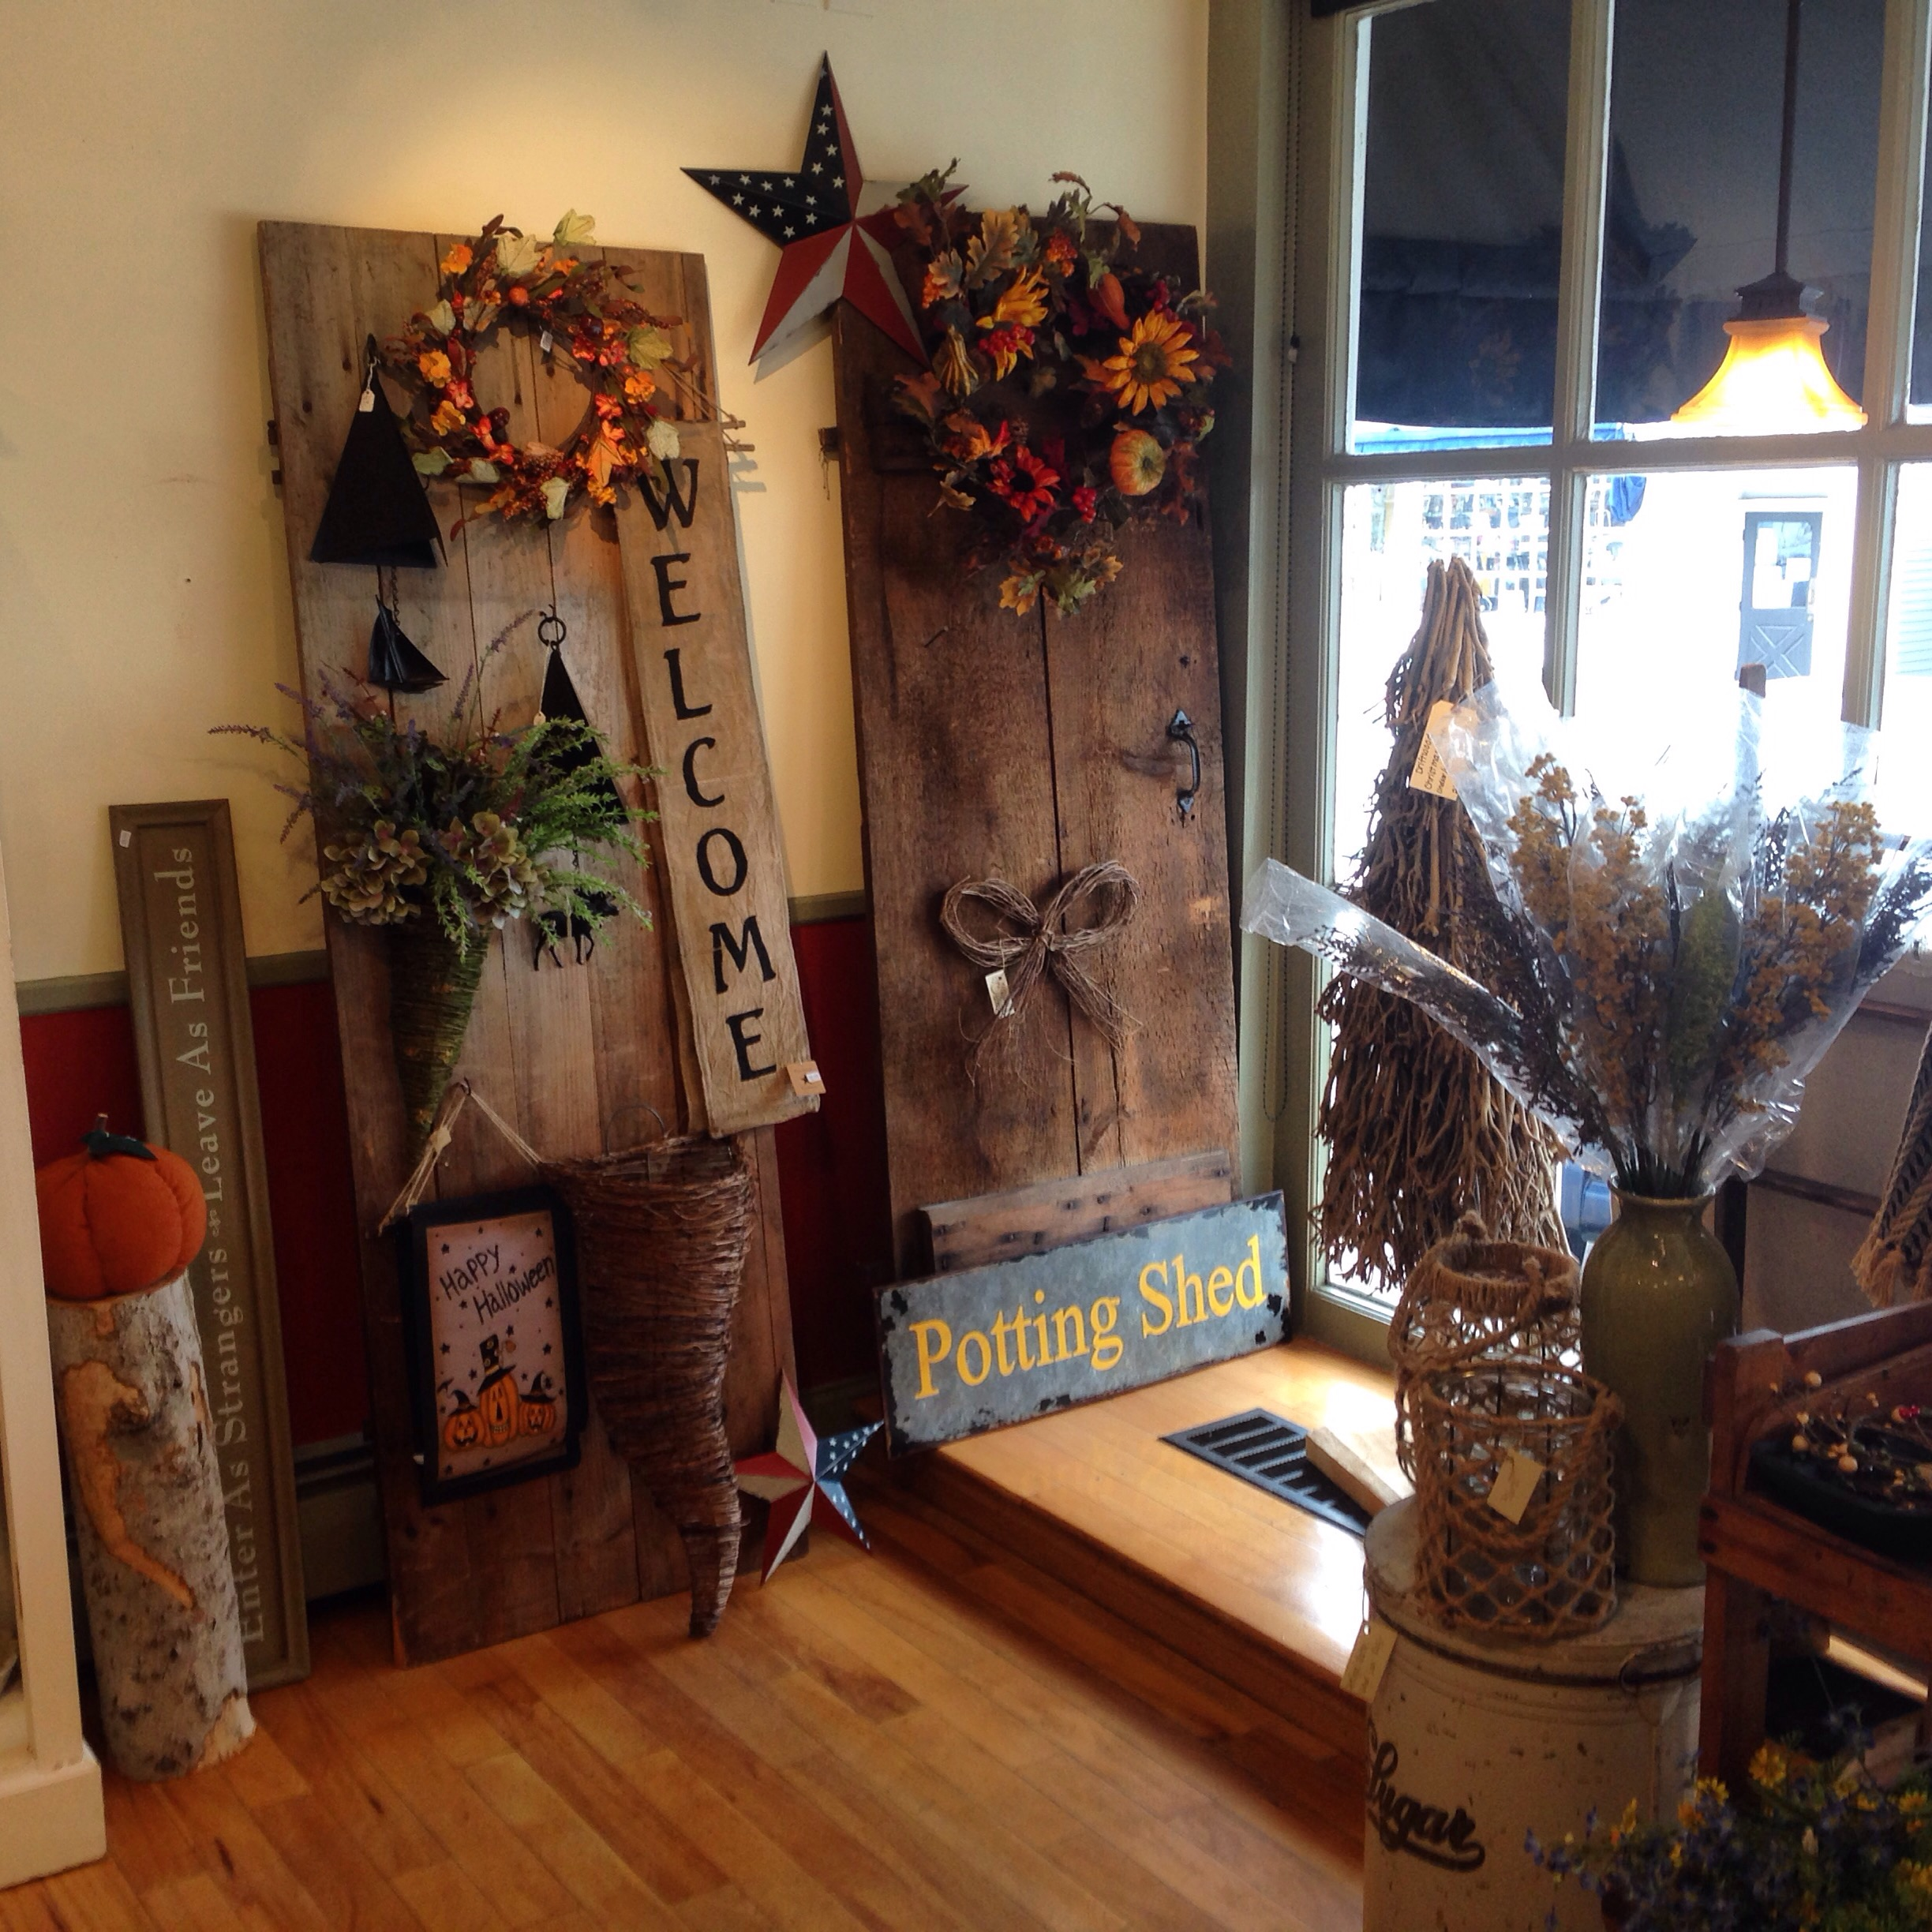 The Straw Cellar - rustic decor and gifts in the heart of Wolfeboro, NH